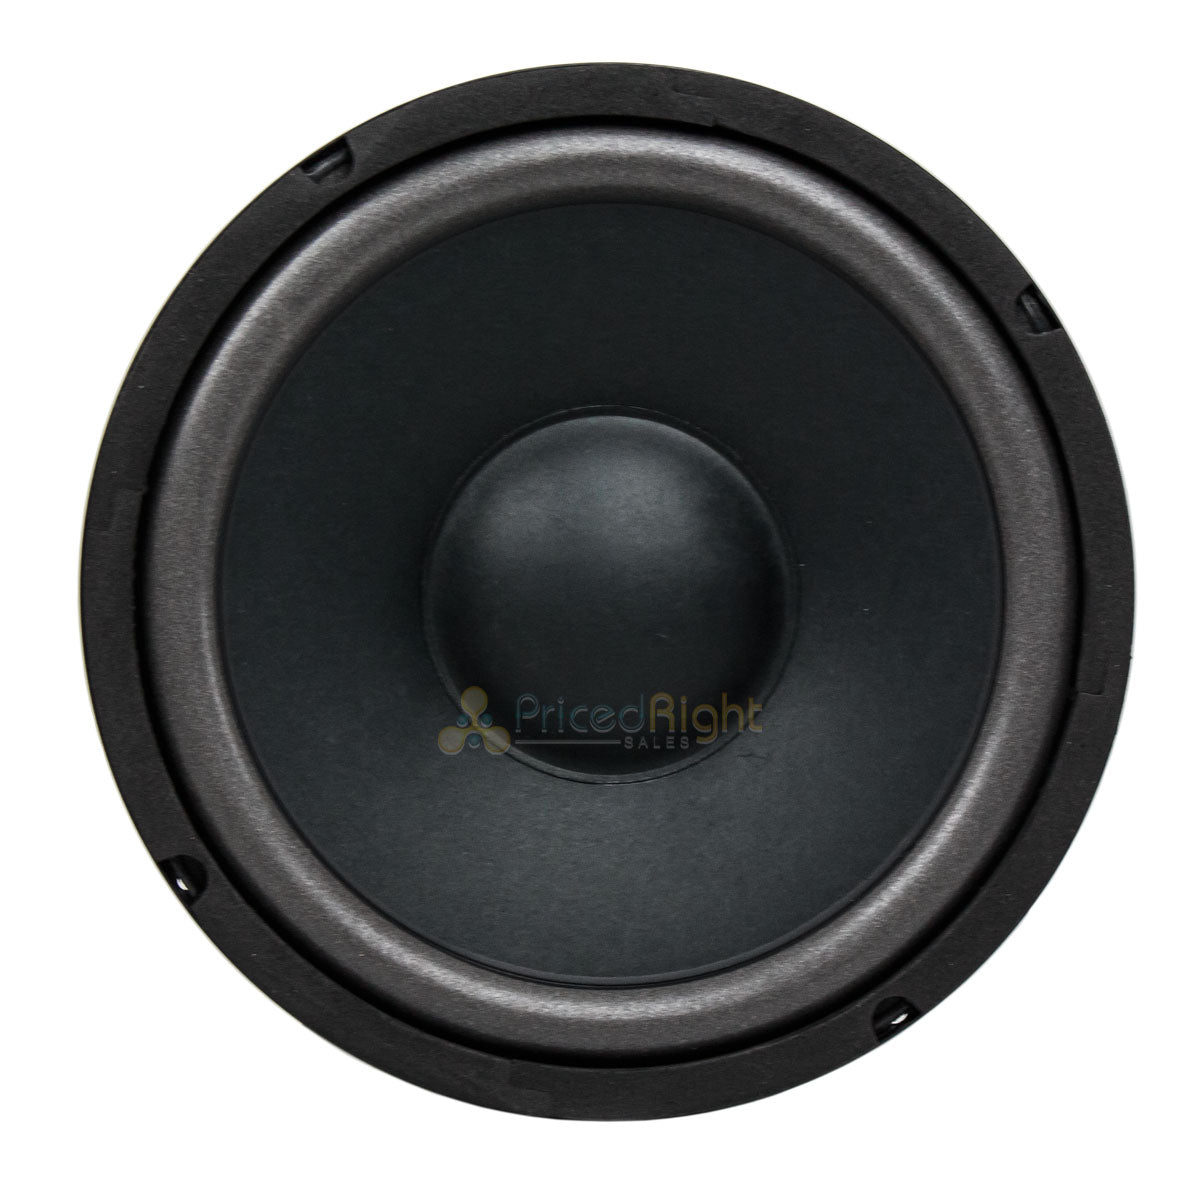 "8"" Subwoofer Nippon Car Sub Woofer Replacement Speaker NWX-820-8 100 Watts"